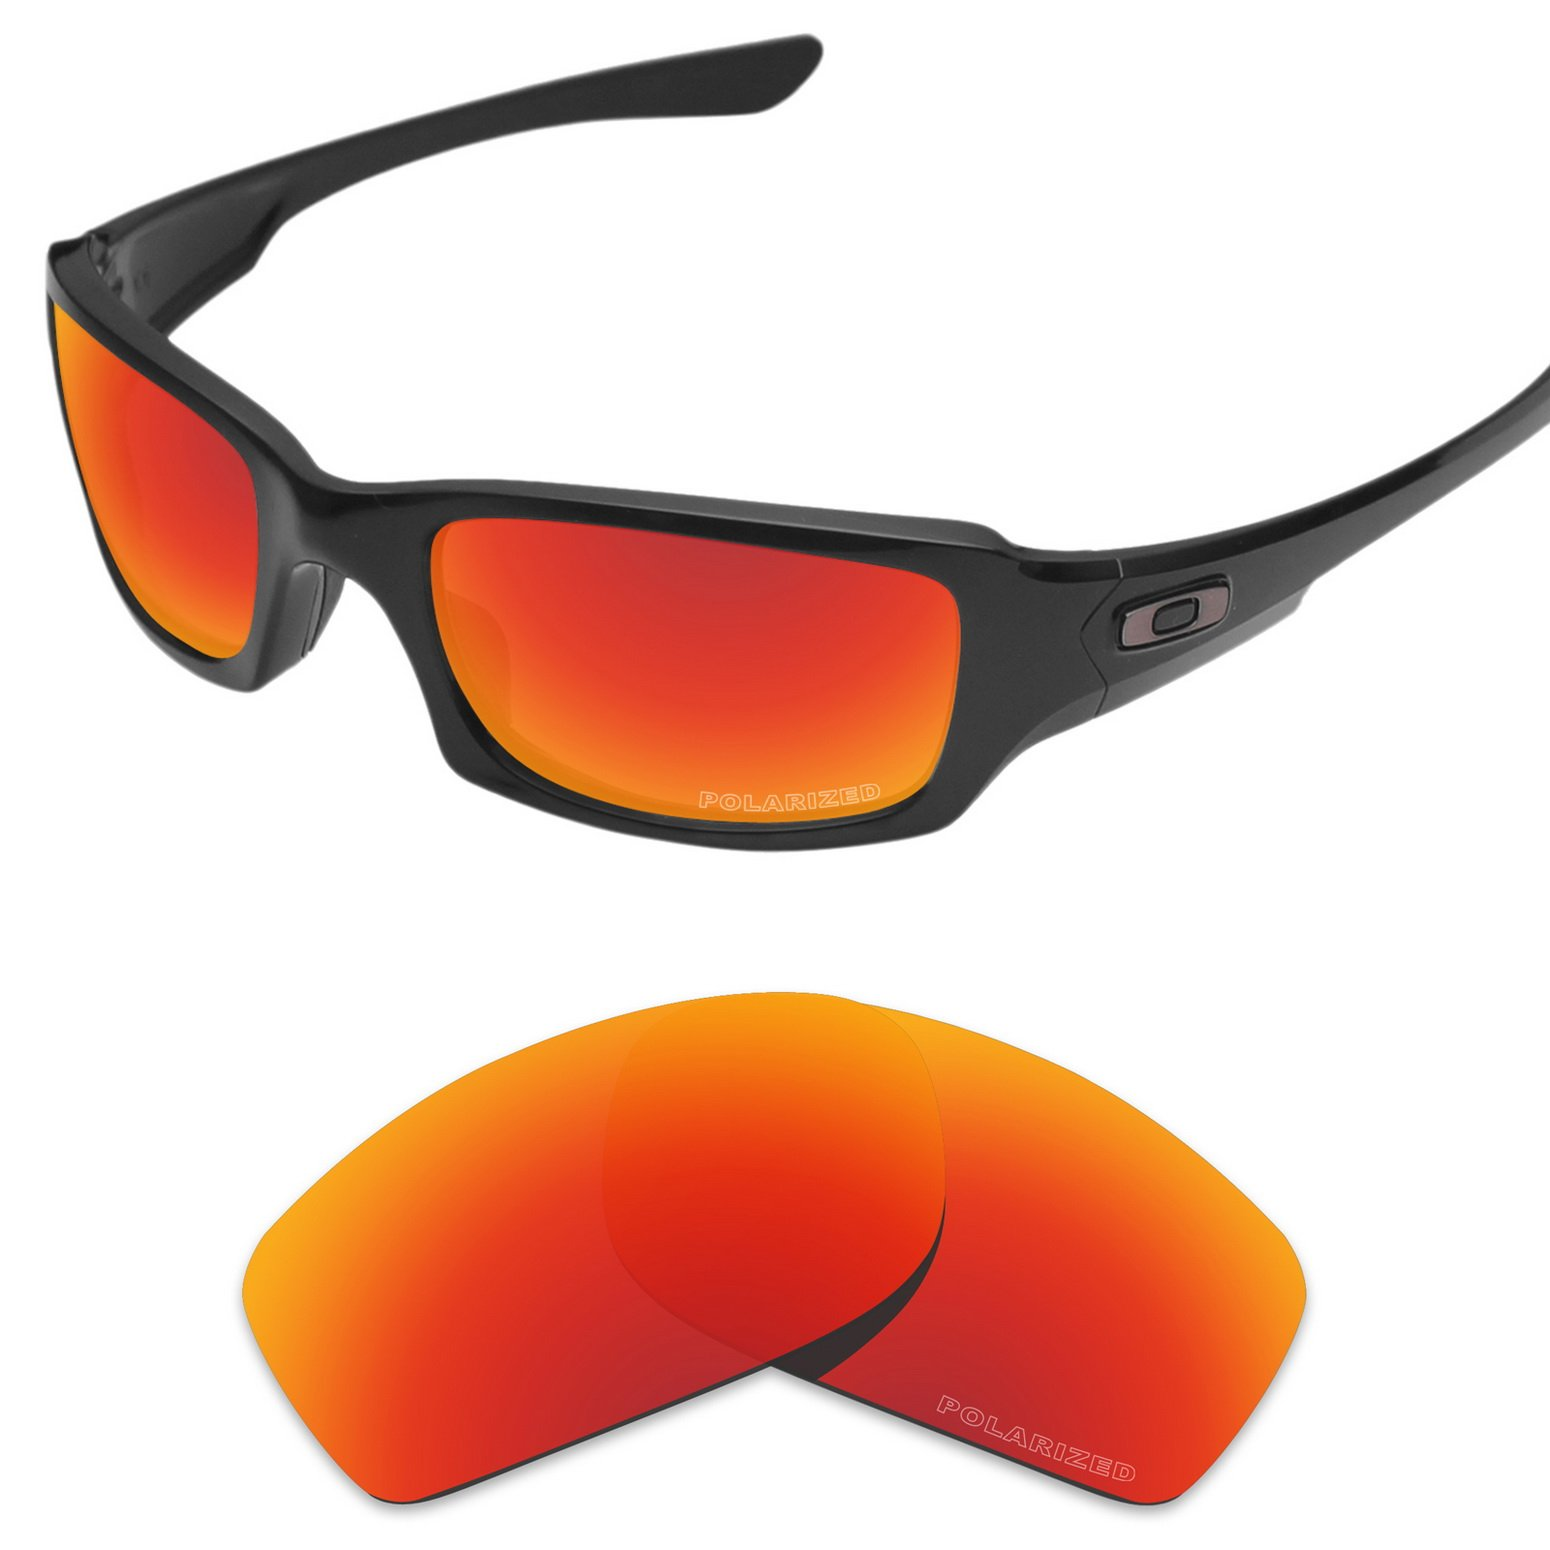 Tintart Performance Replacement Lenses for Oakley Fives Squared Sunglass Polarized Etched-Fire Red by Tintart